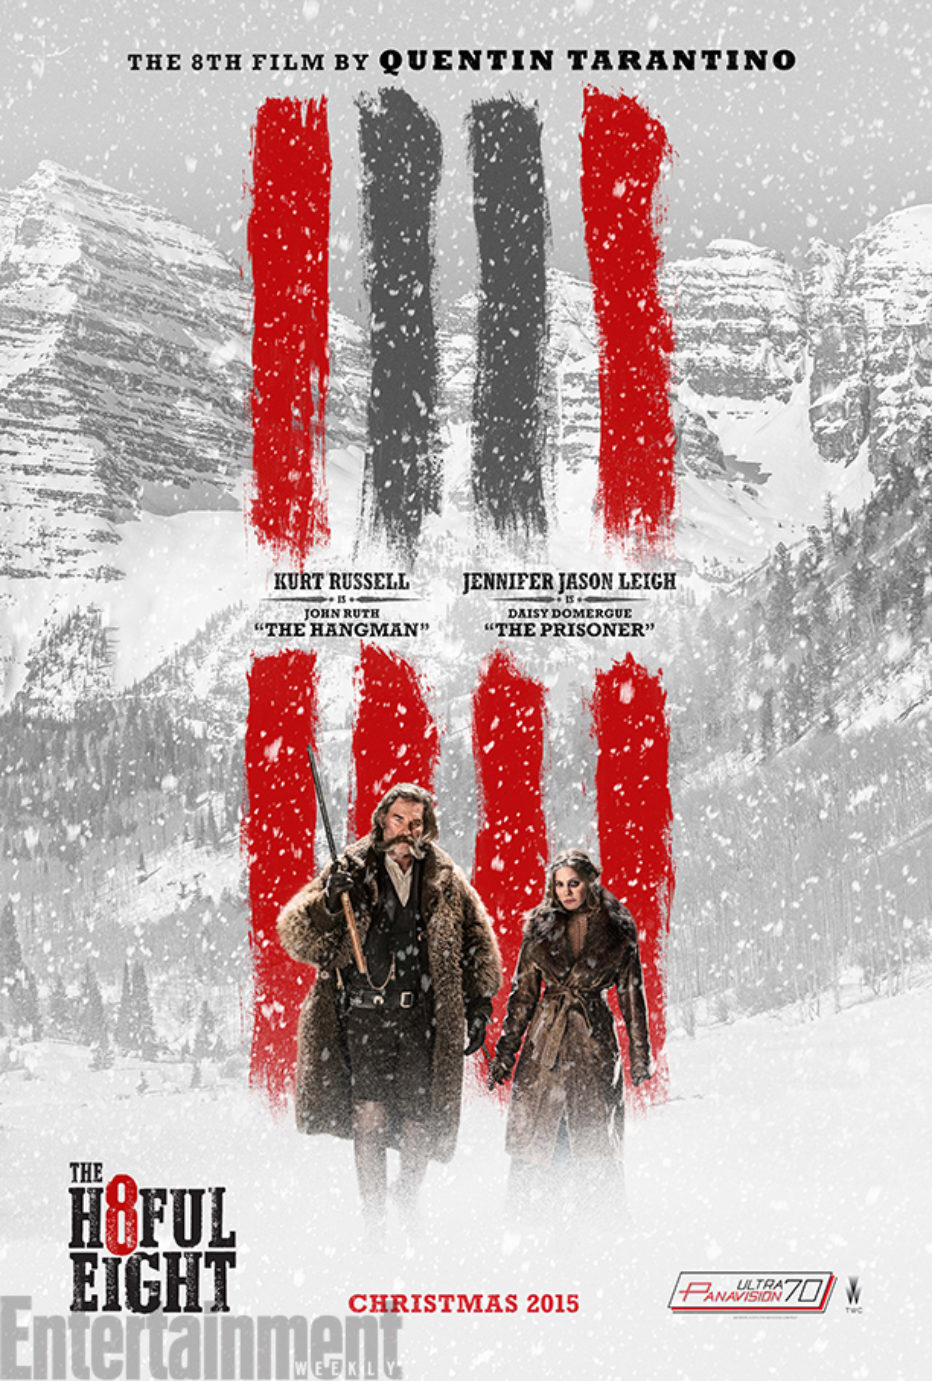 Nuevo trailer de The Hateful Eight de Tarantino